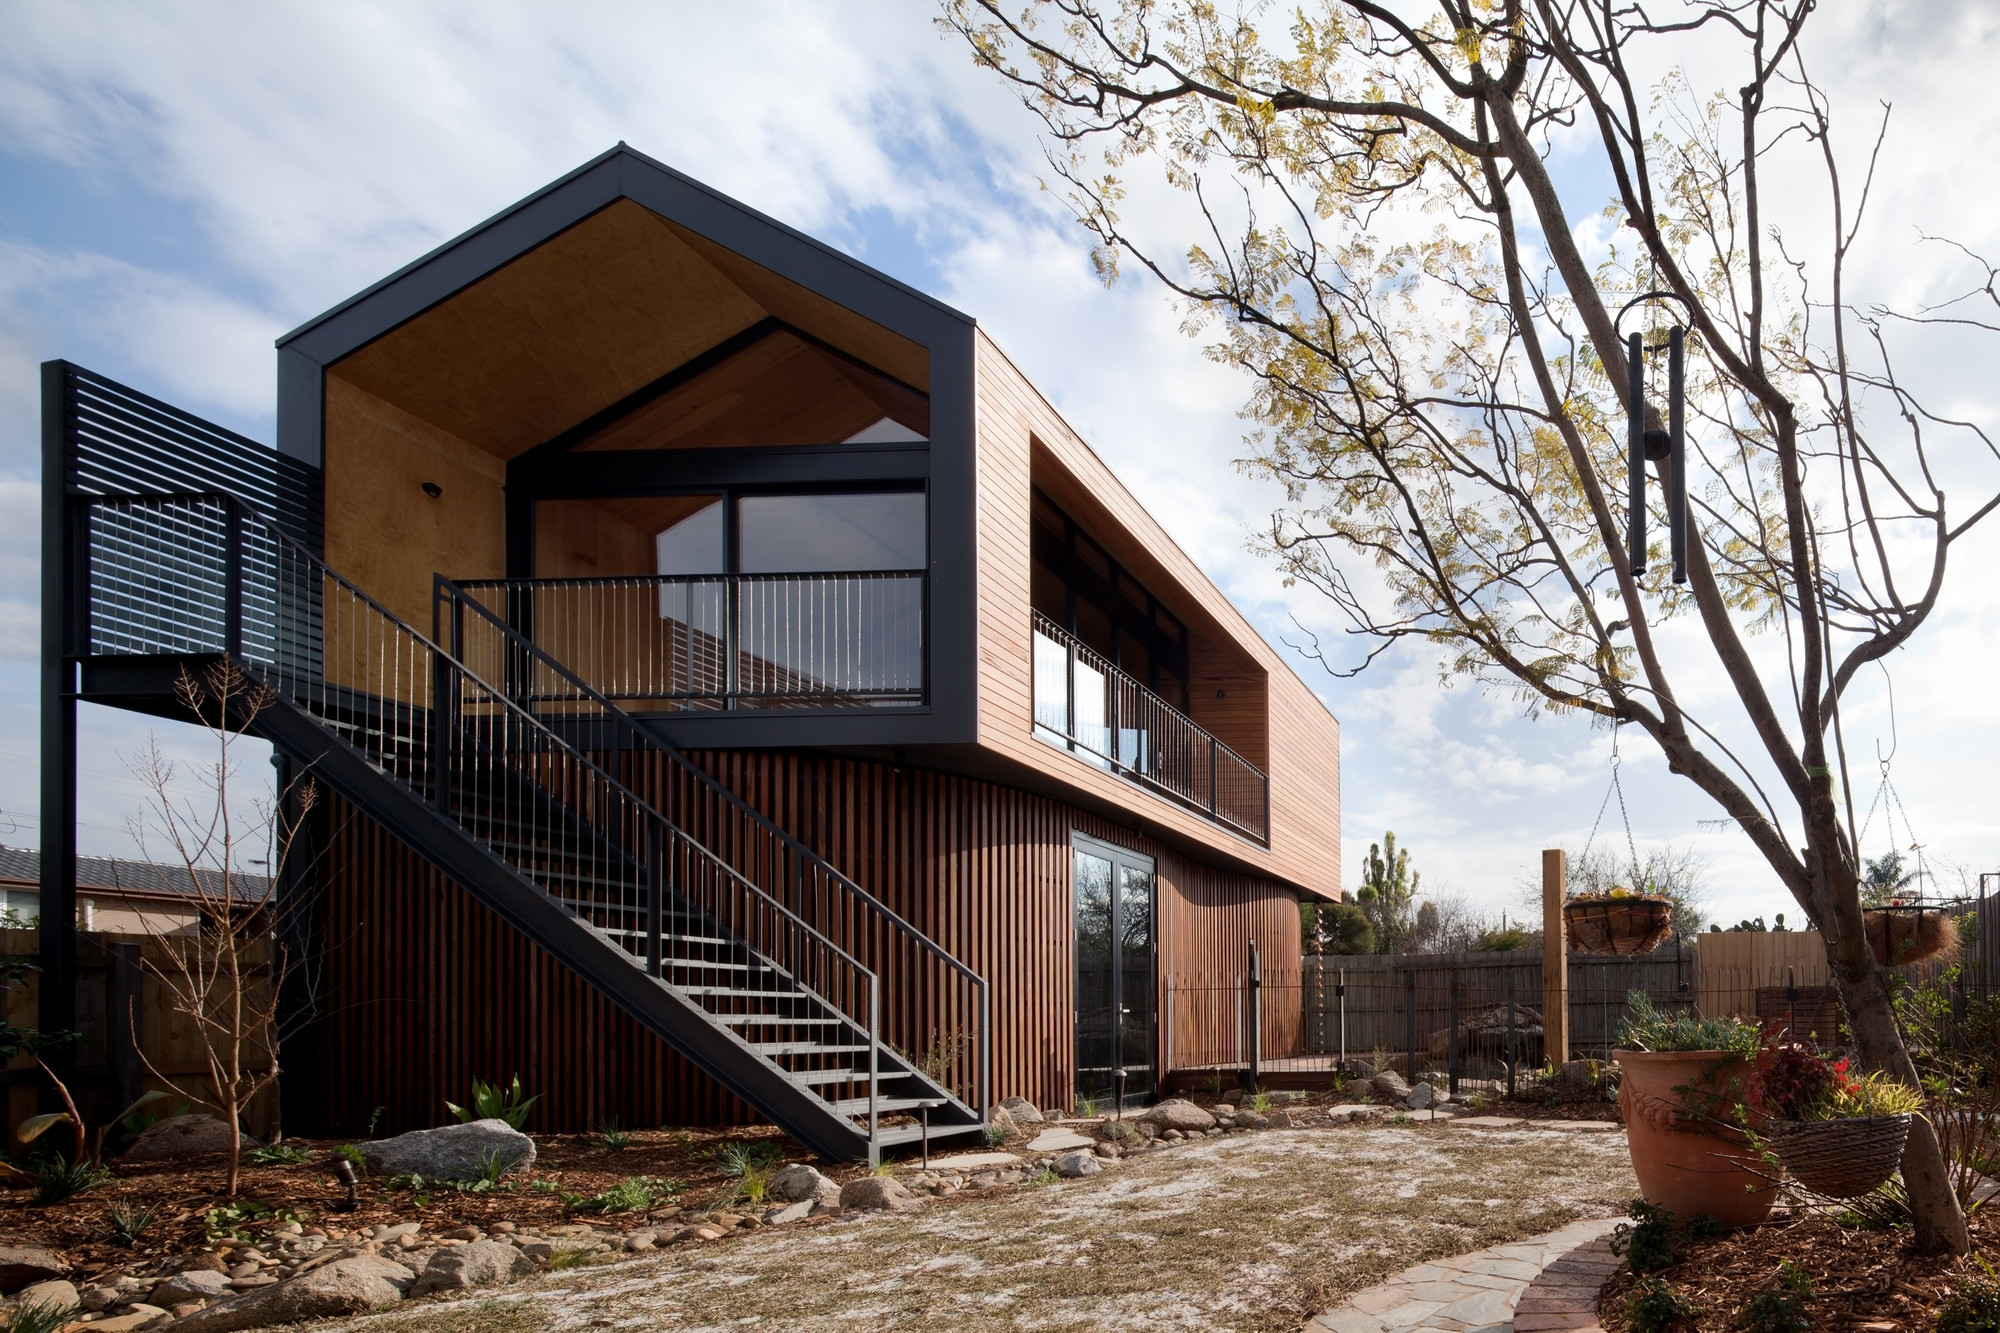 Artist's Studio / Chan Architecture, © Folded Bird Photography